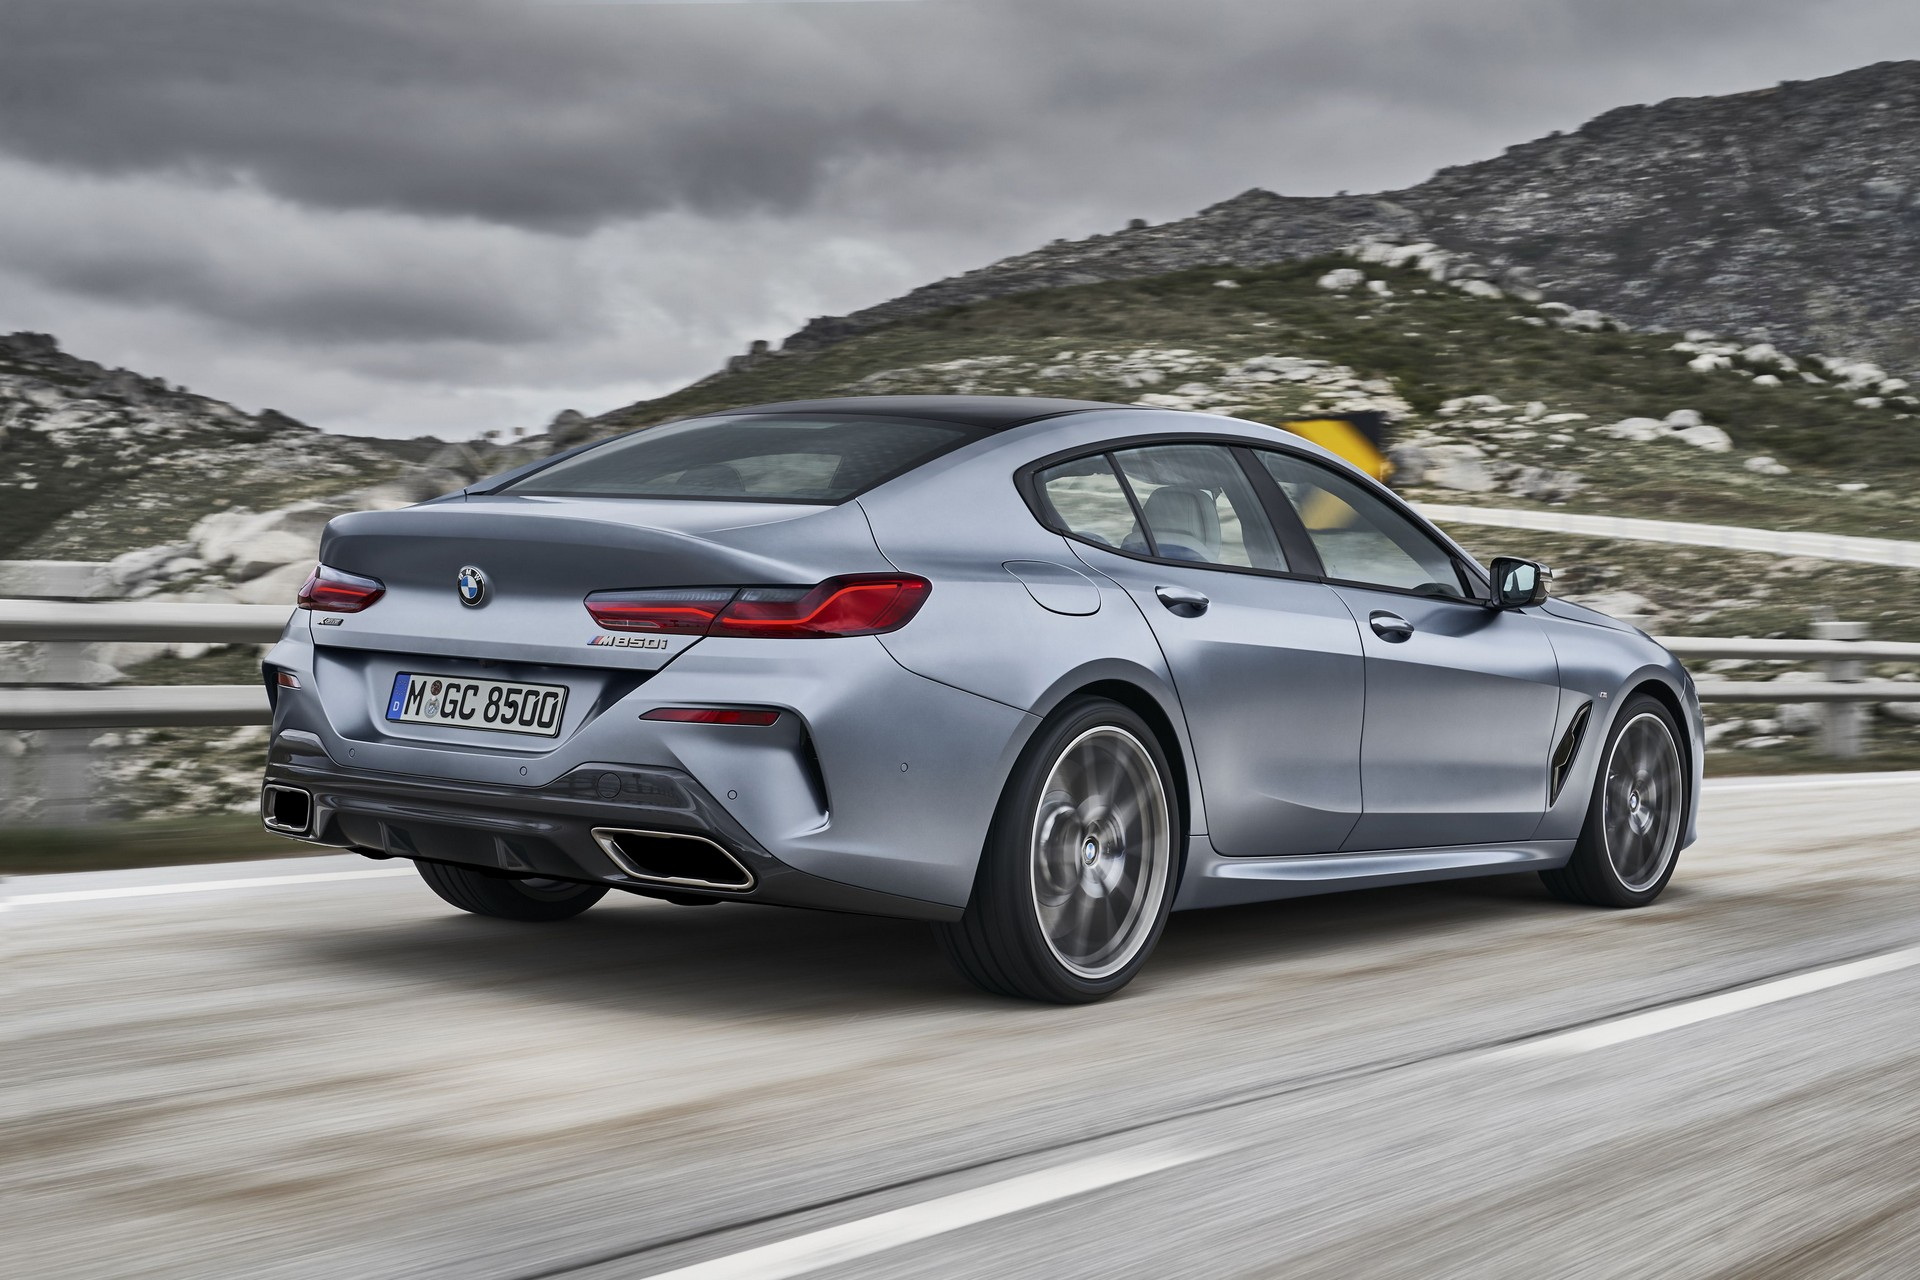 2020 BMW 8-Series Gran Coupe Combines Good Looks With Up